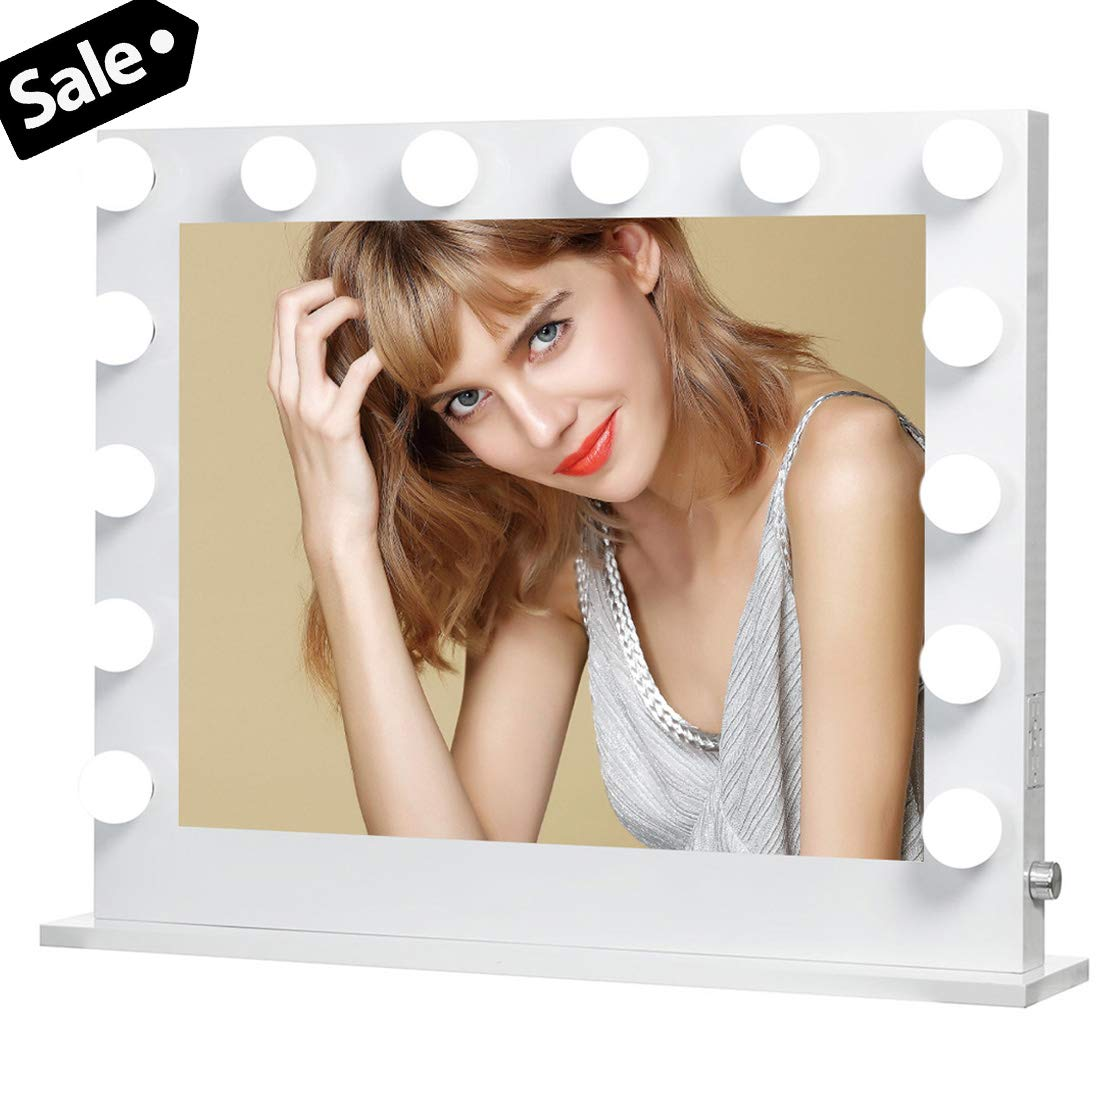 ICREAT CREAT Lighted Makeup Mirror, Hollywood Vanity Mirror with 14 Bulbs, Wall Mounted Mirror with Dimmer, Tabletop Mirrors for Makeup, Large Mirror with 2 USB Outlet, White